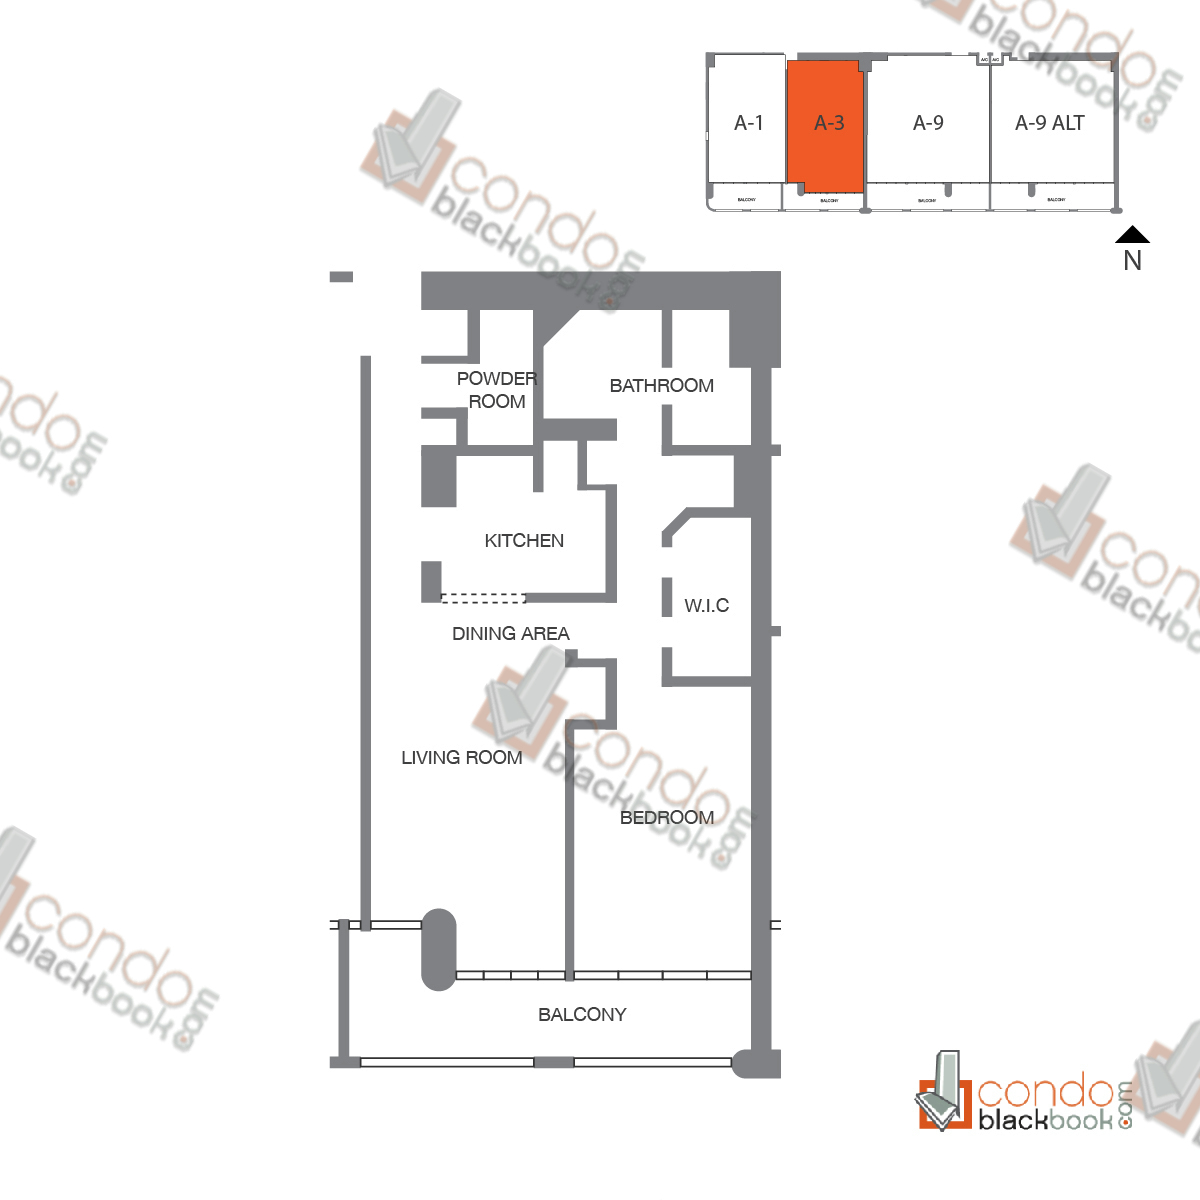 Floor plan for The Grand Arts & Entertainment District Miami, model Unit 53, 57, line A-1053 to A-4253, B-4153, D-3953, A-1057, 1/1.5 bedrooms, 997 sq ft